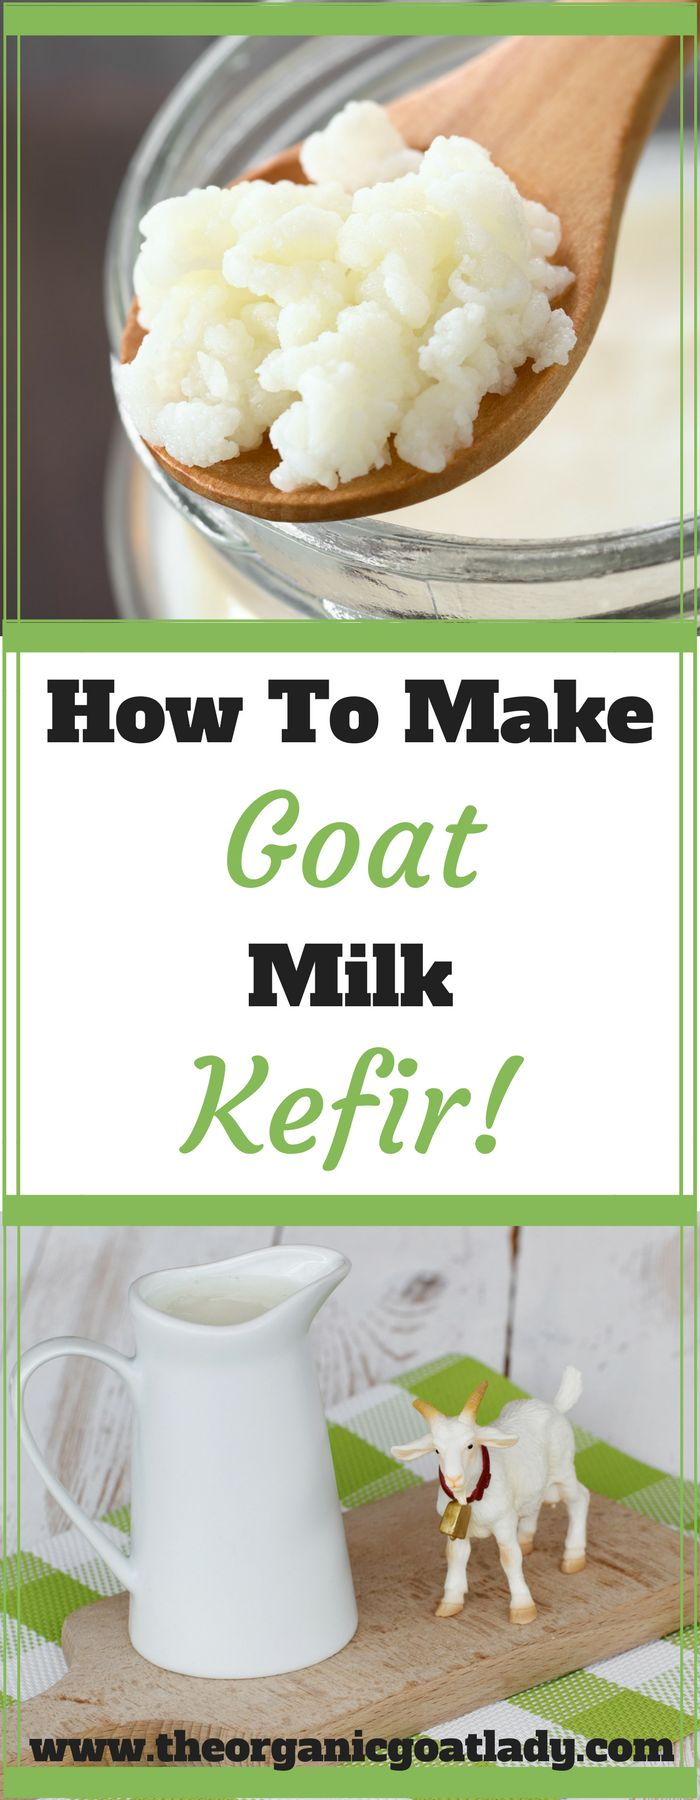 How To Make Goat Milk Kefir!